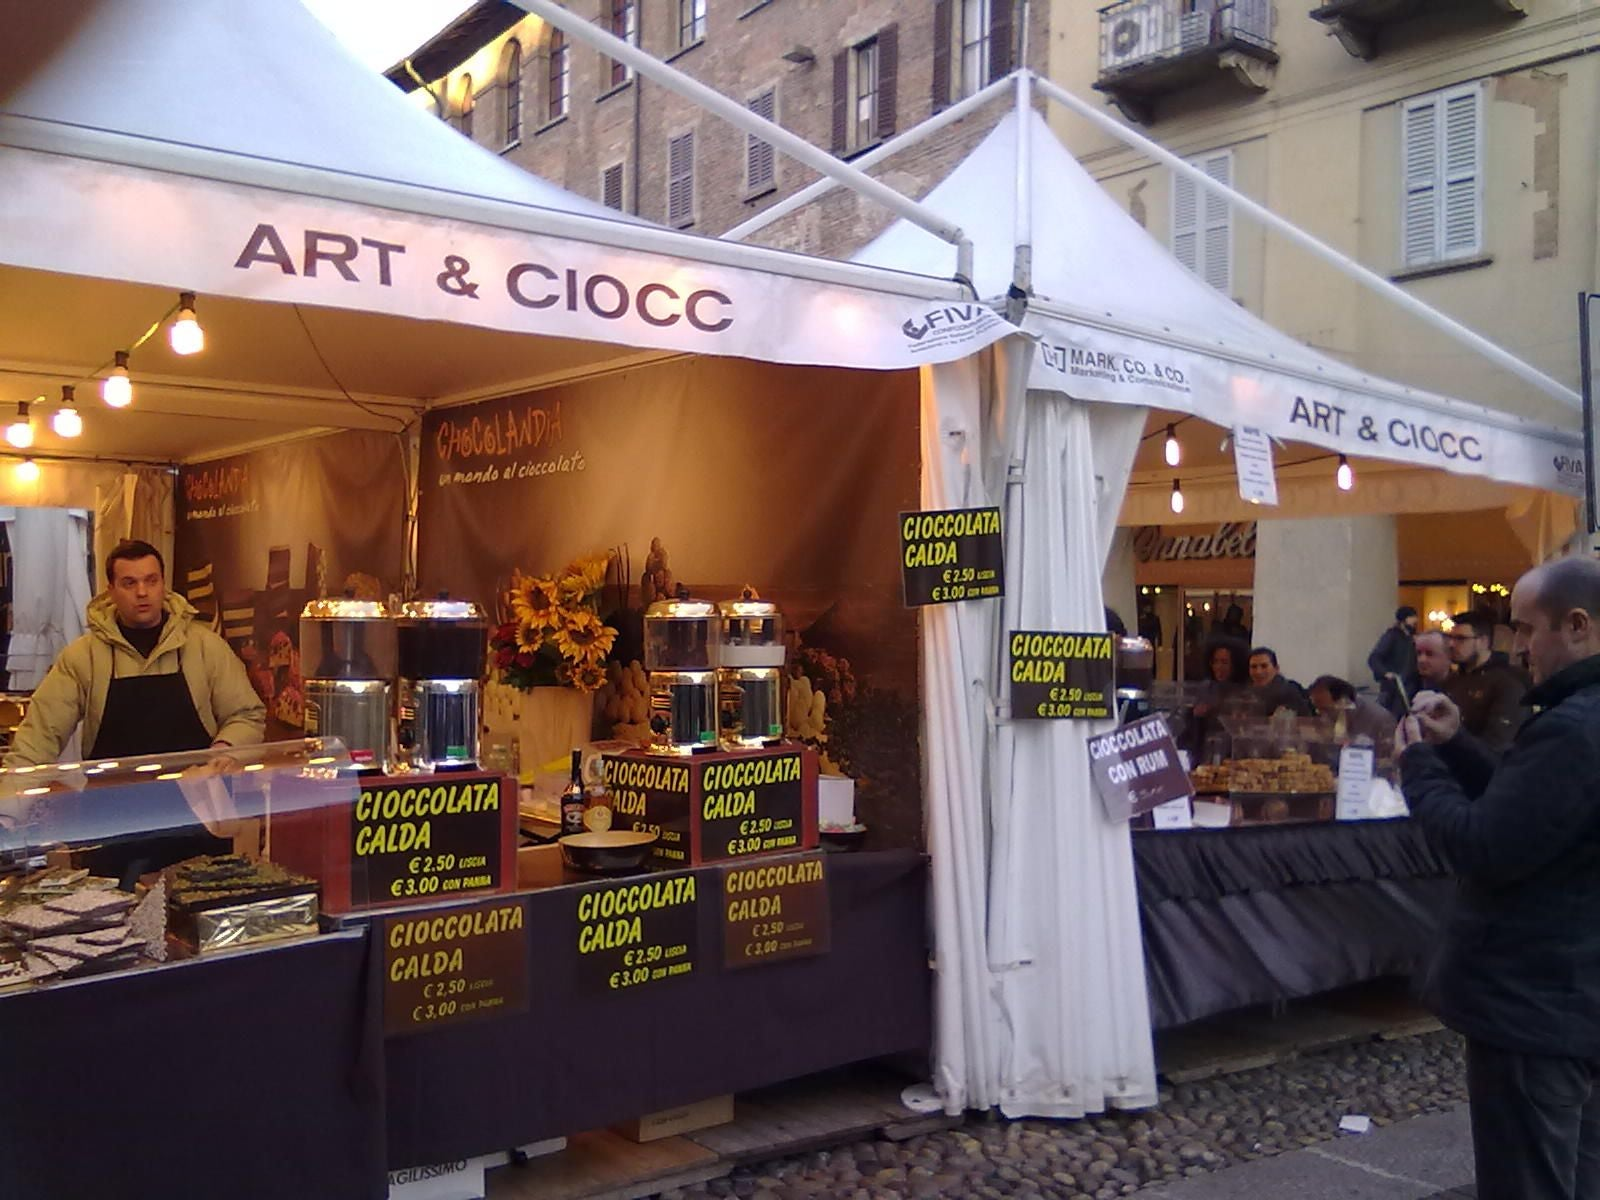 Fair in Art & Ciocc Pavia